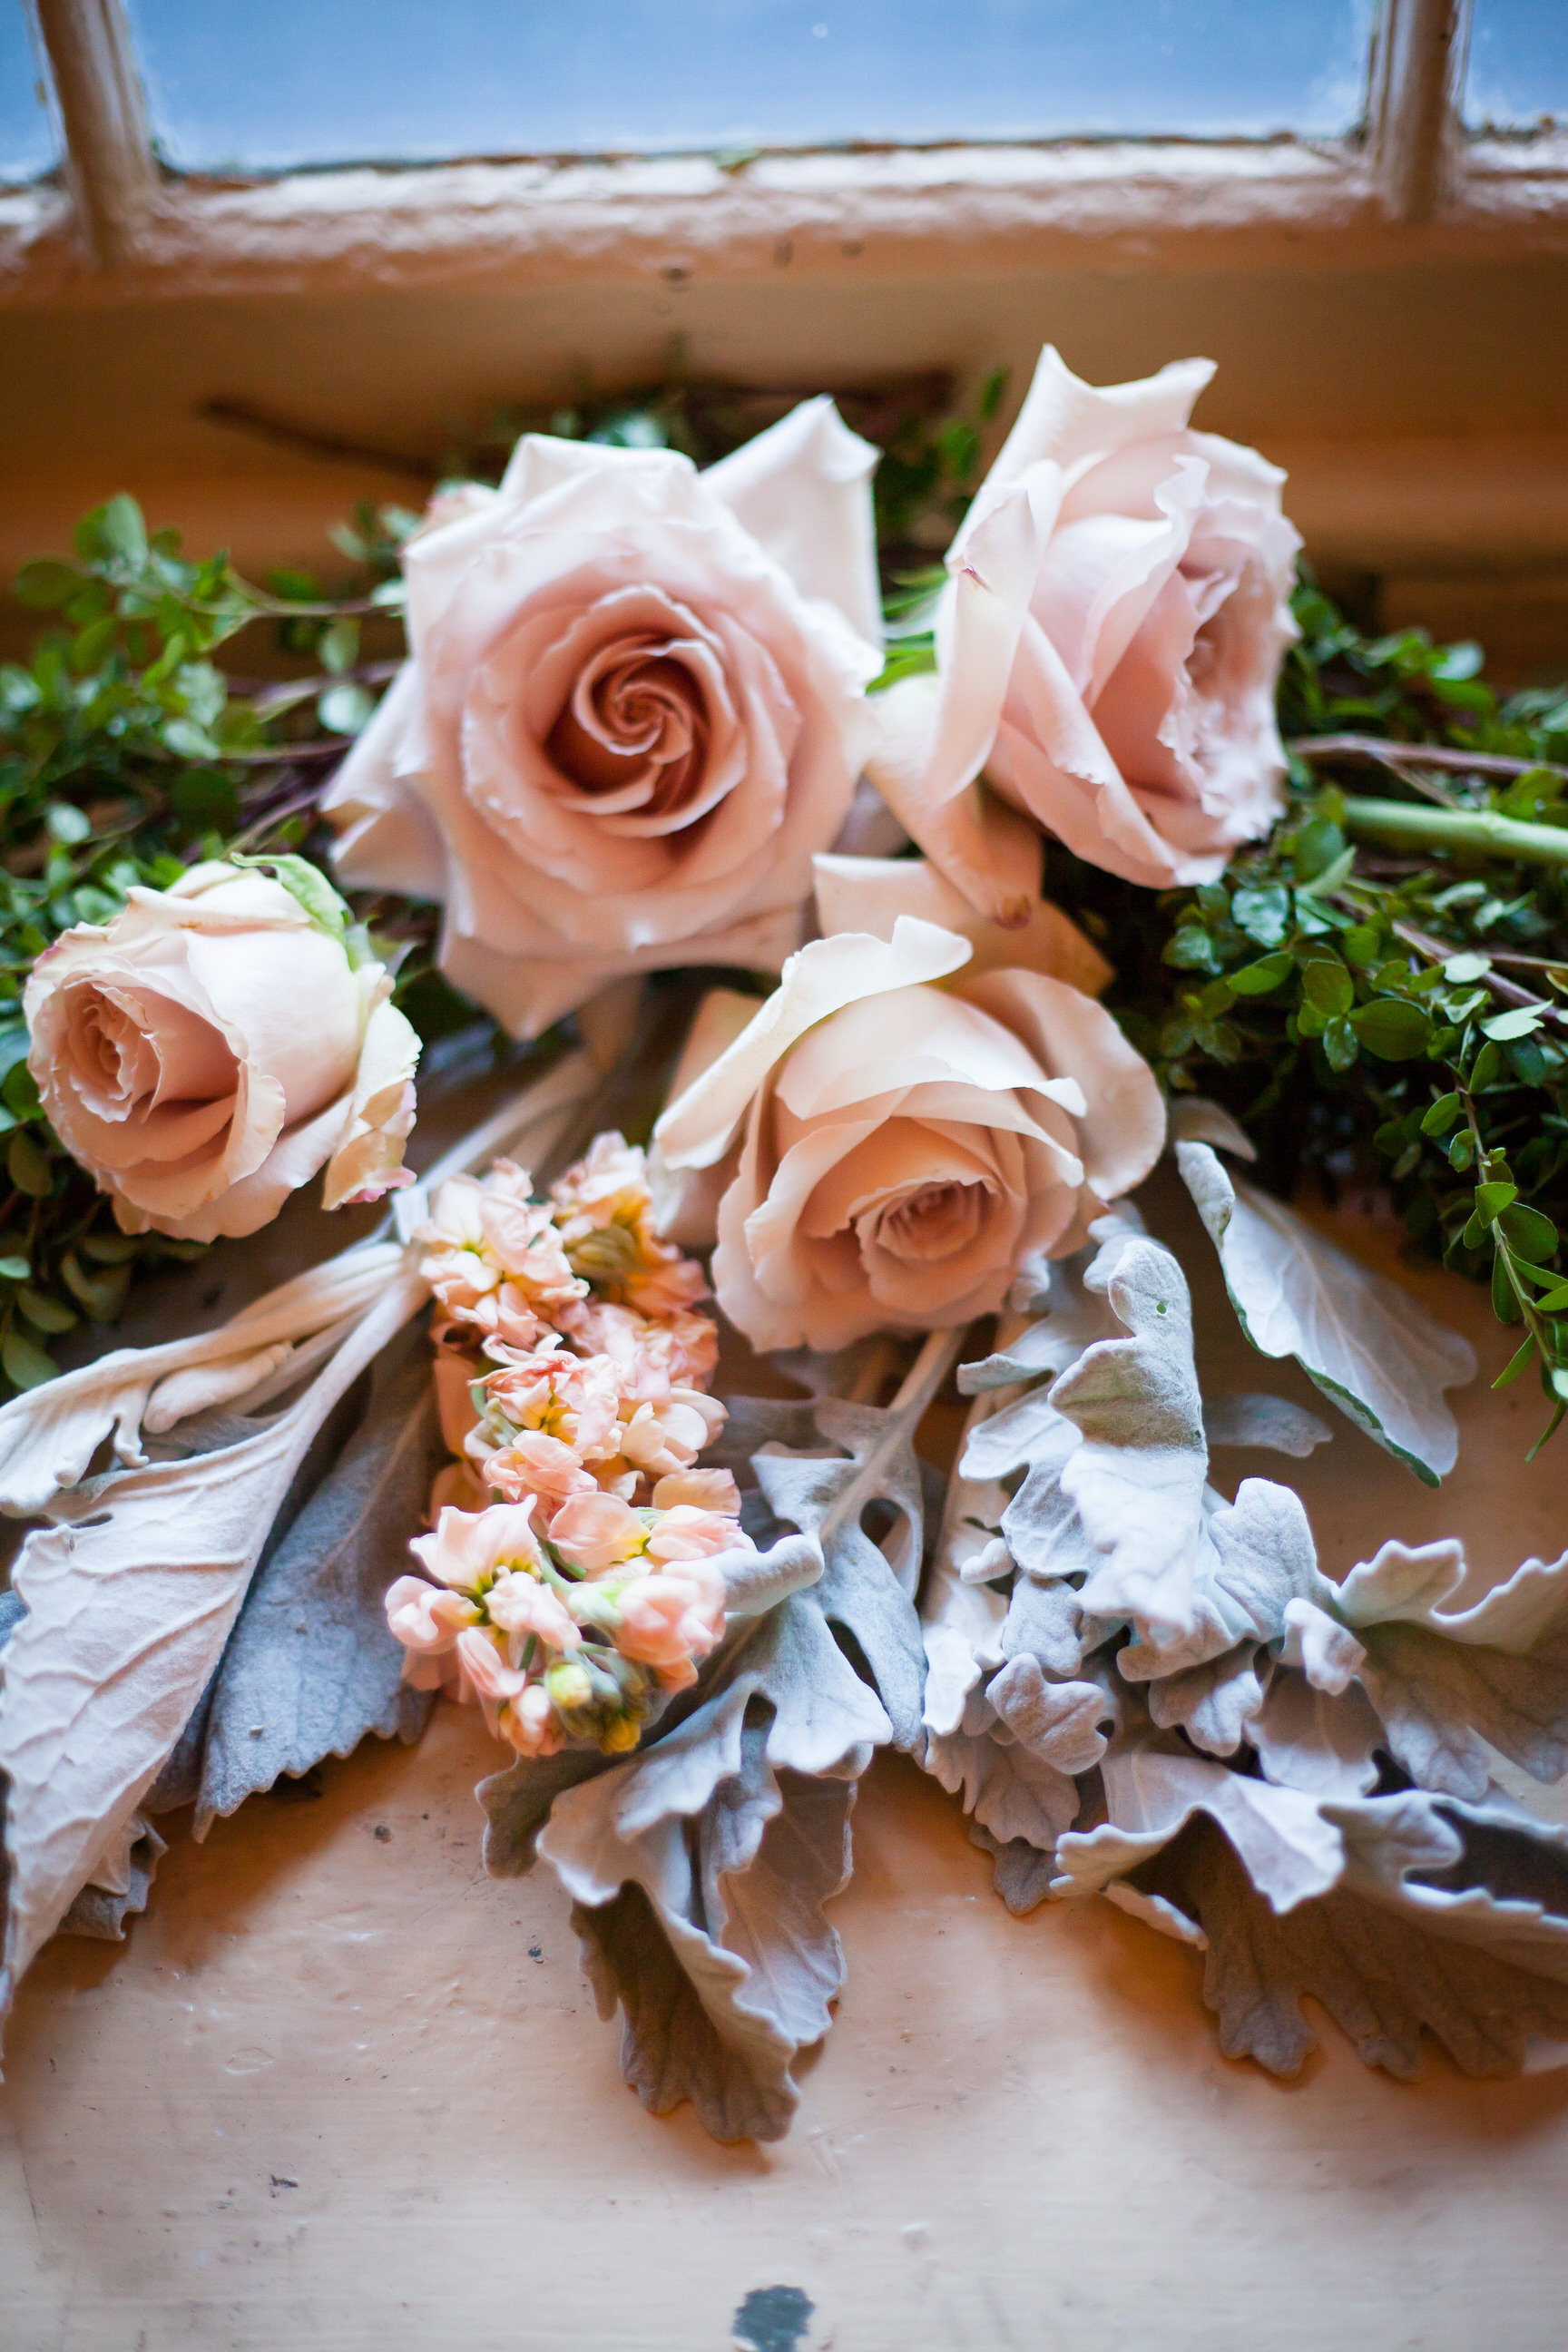 73 Creme and Pale Pink Roses Dusty Miller Wedding Garland.jpg